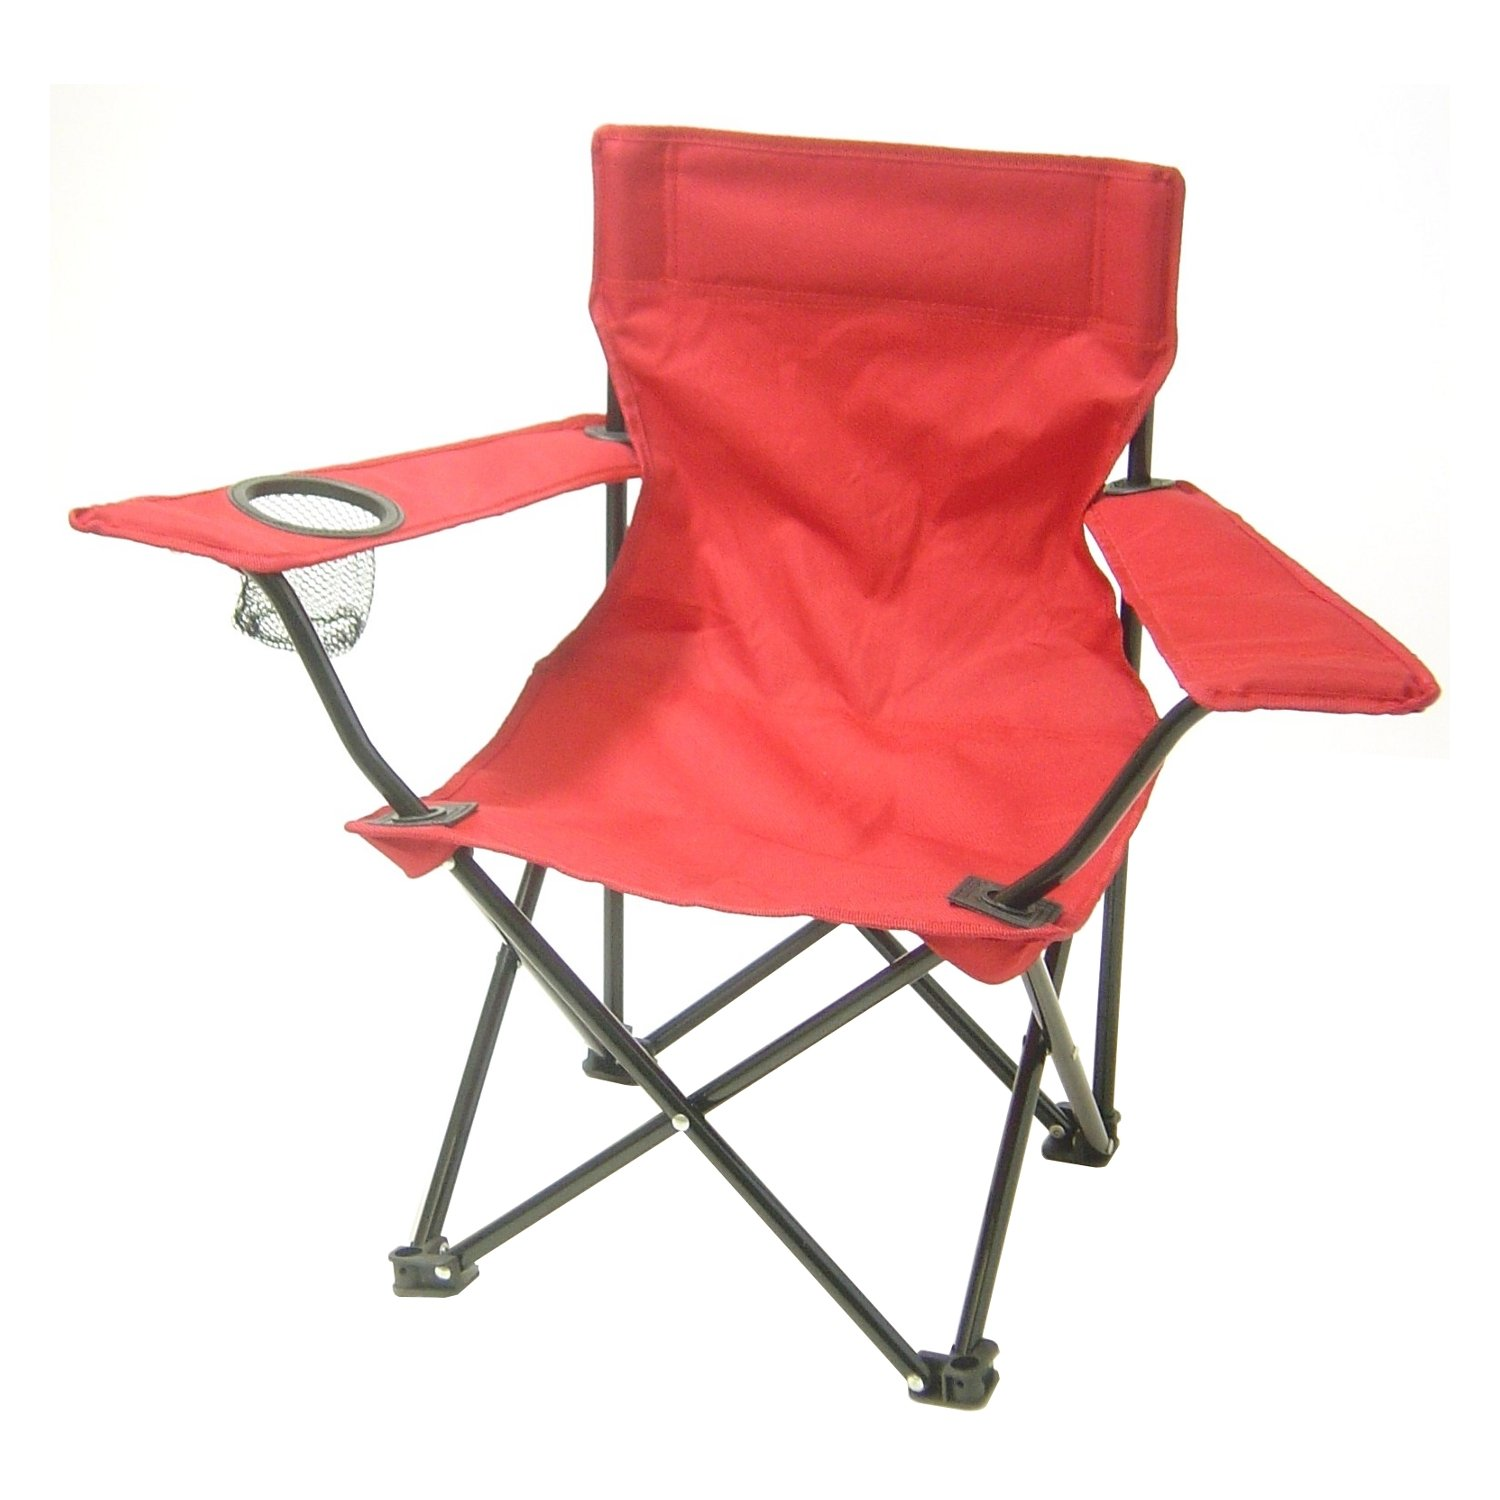 Redmon for Kids, Kids Folding Camp Chair, Red by Redmon